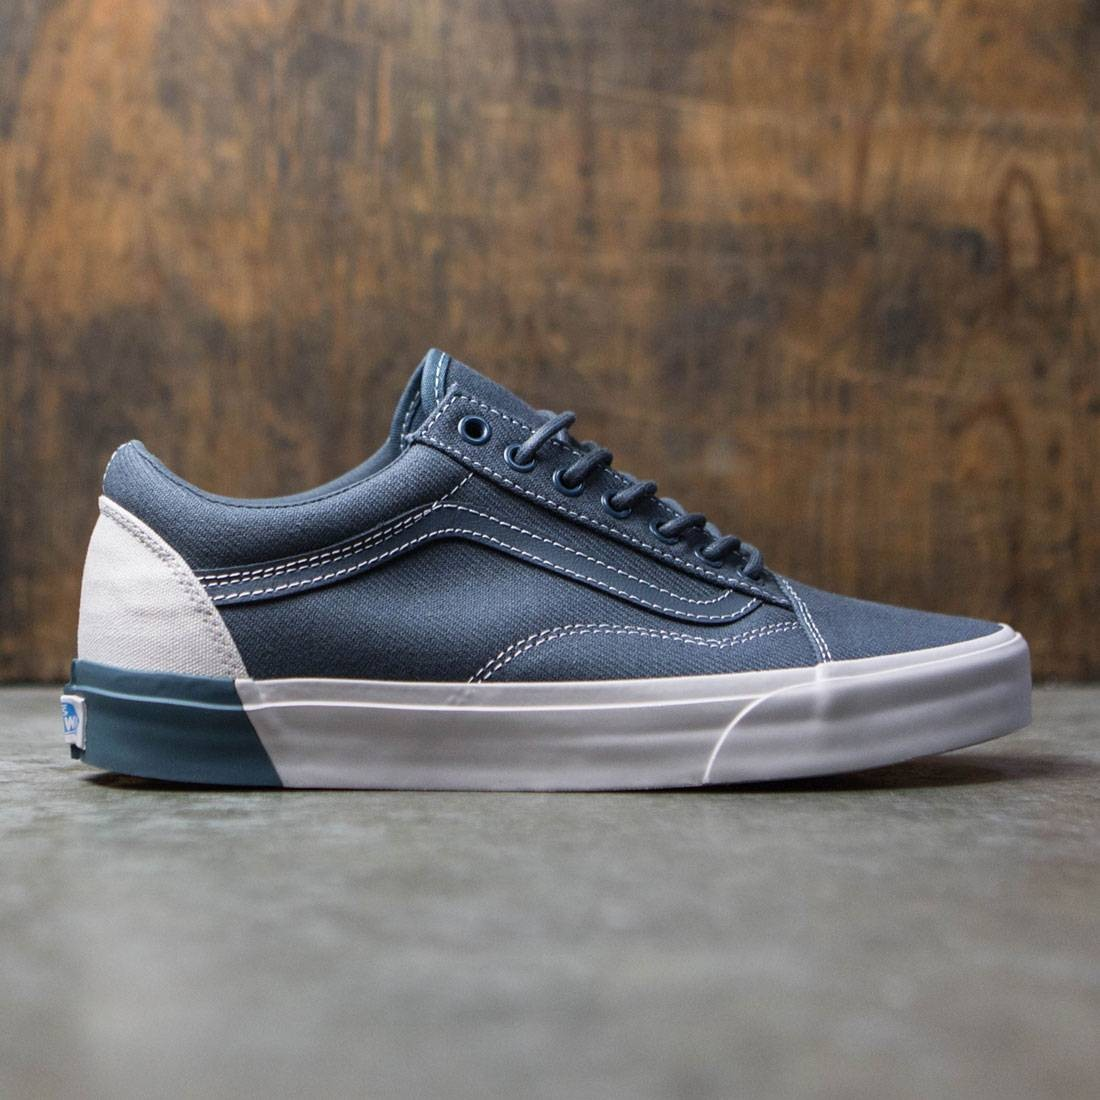 74a967abb105 Vans Men Old Skool DX - Blocked gray  white